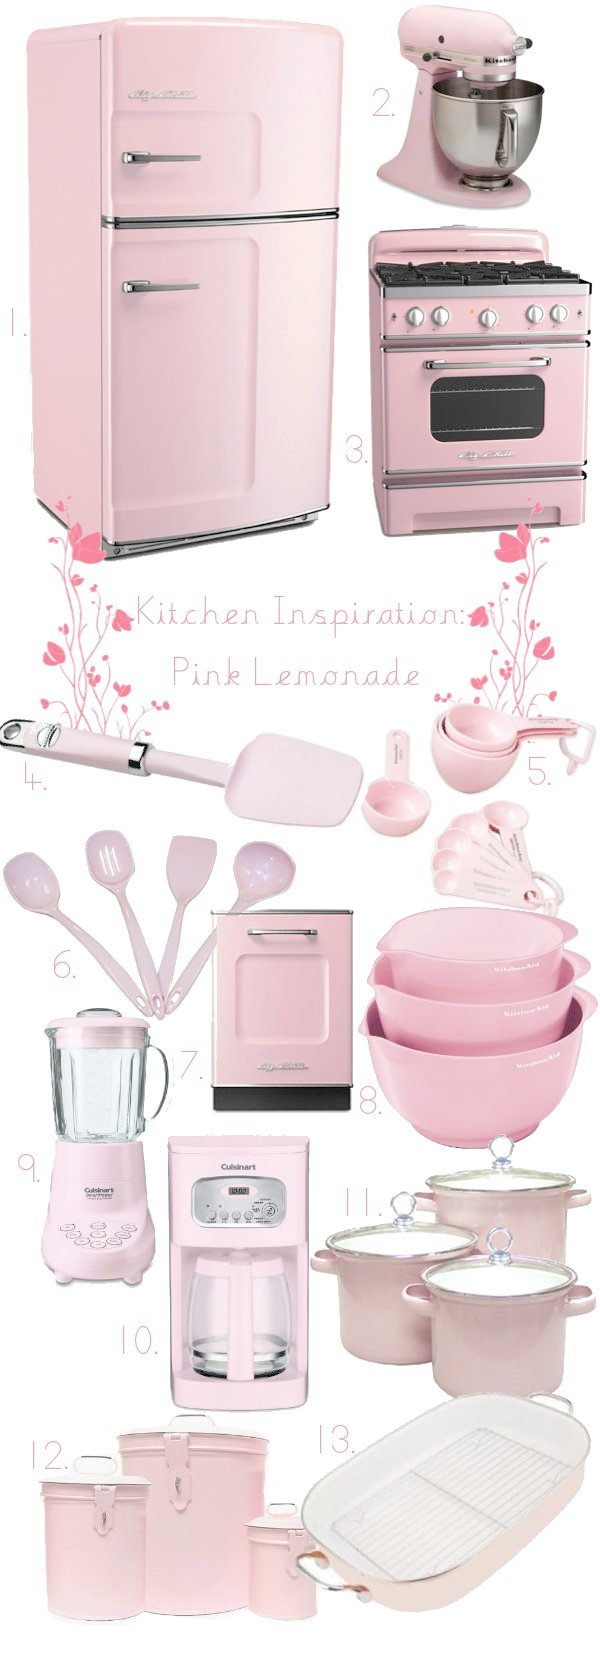 Pink Kitchen Things   Unfortunately Iu0027m Married And If I Bought Any Of These Things In Pink It